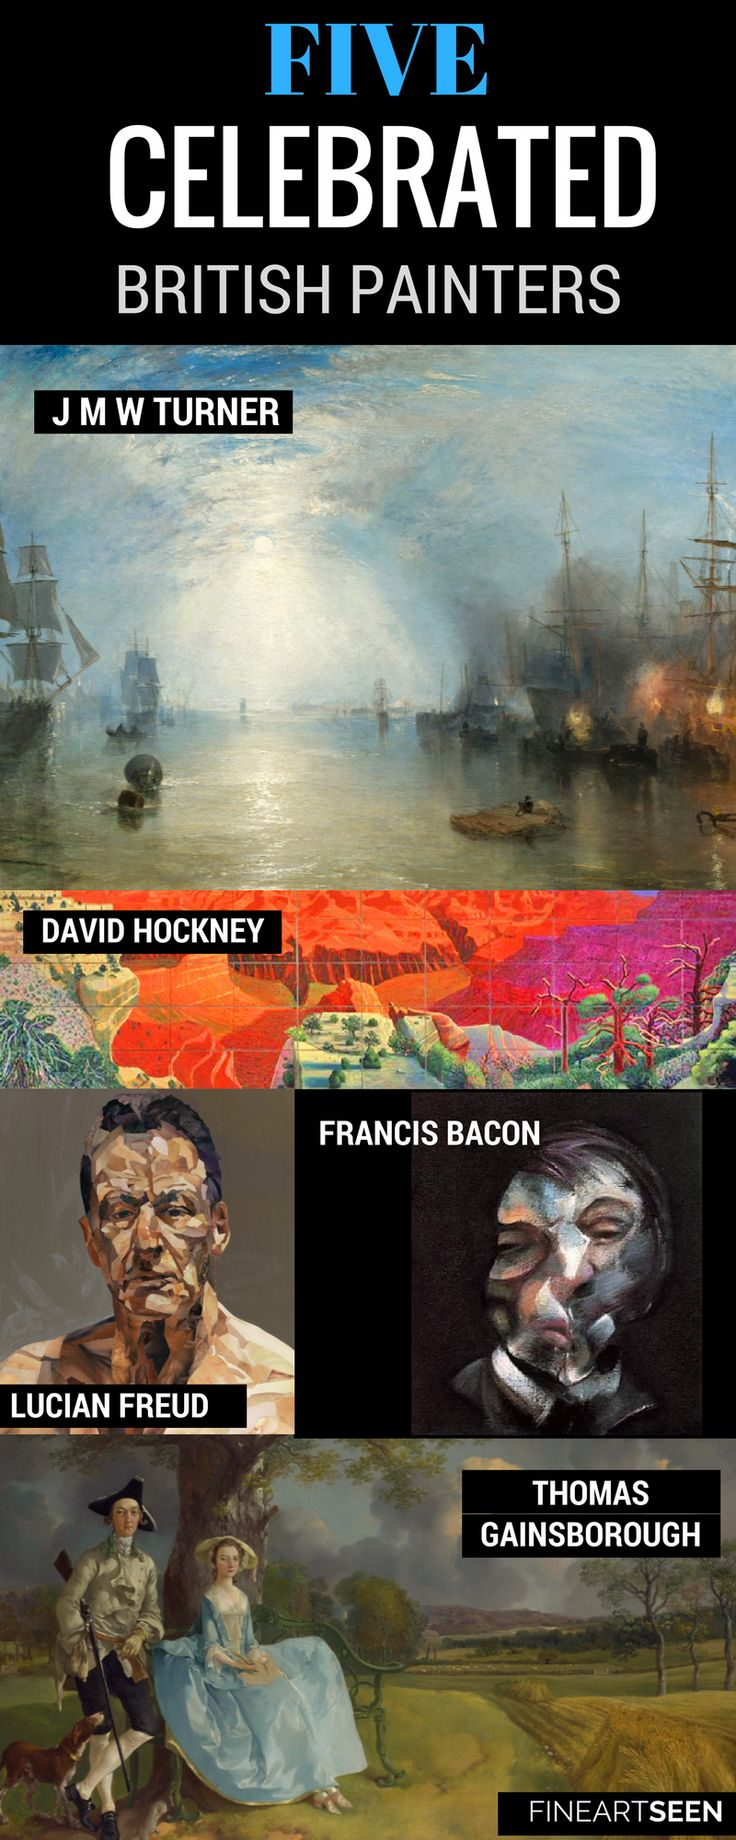 See who made the list! J.M.W TURNER (1775-1851) a romanticist landscape painter. DAVID HOCKNEY (B.1937), considered one of Britain's most influential painters of the 19th century. LUCIAN FREUD (1922-2011), one of the most distinguished artists of his time and recognised for his original portrait paintings. FRANCIS BACON (1909-1992) an Irish painter who has become one of Britain's most acclaimed artists. THOMAS GAINSBOROUGH (1727-1788), one of the founders of the Royal Academy.